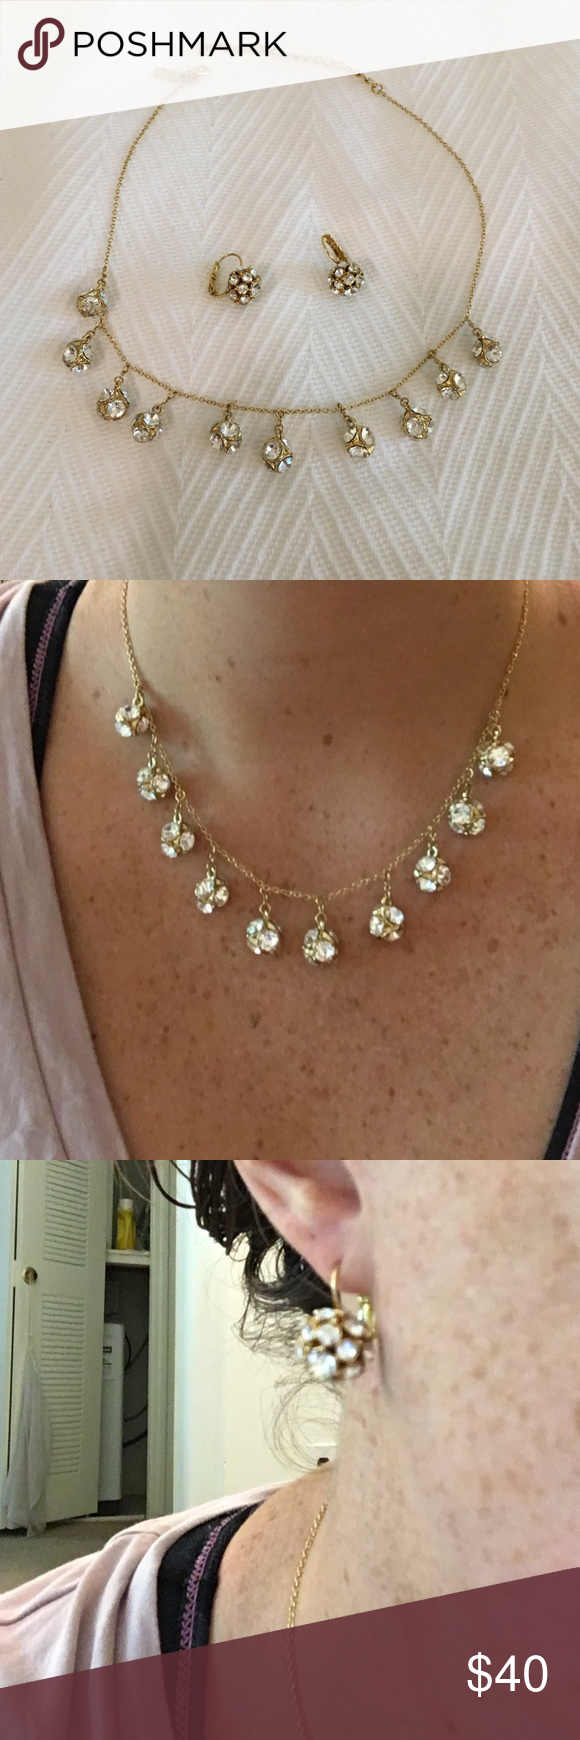 Kate Spade Disco Necklace and Earring Set Fun and beautiful set! Small white stones on small gold balls kate spade Jewelry Necklaces